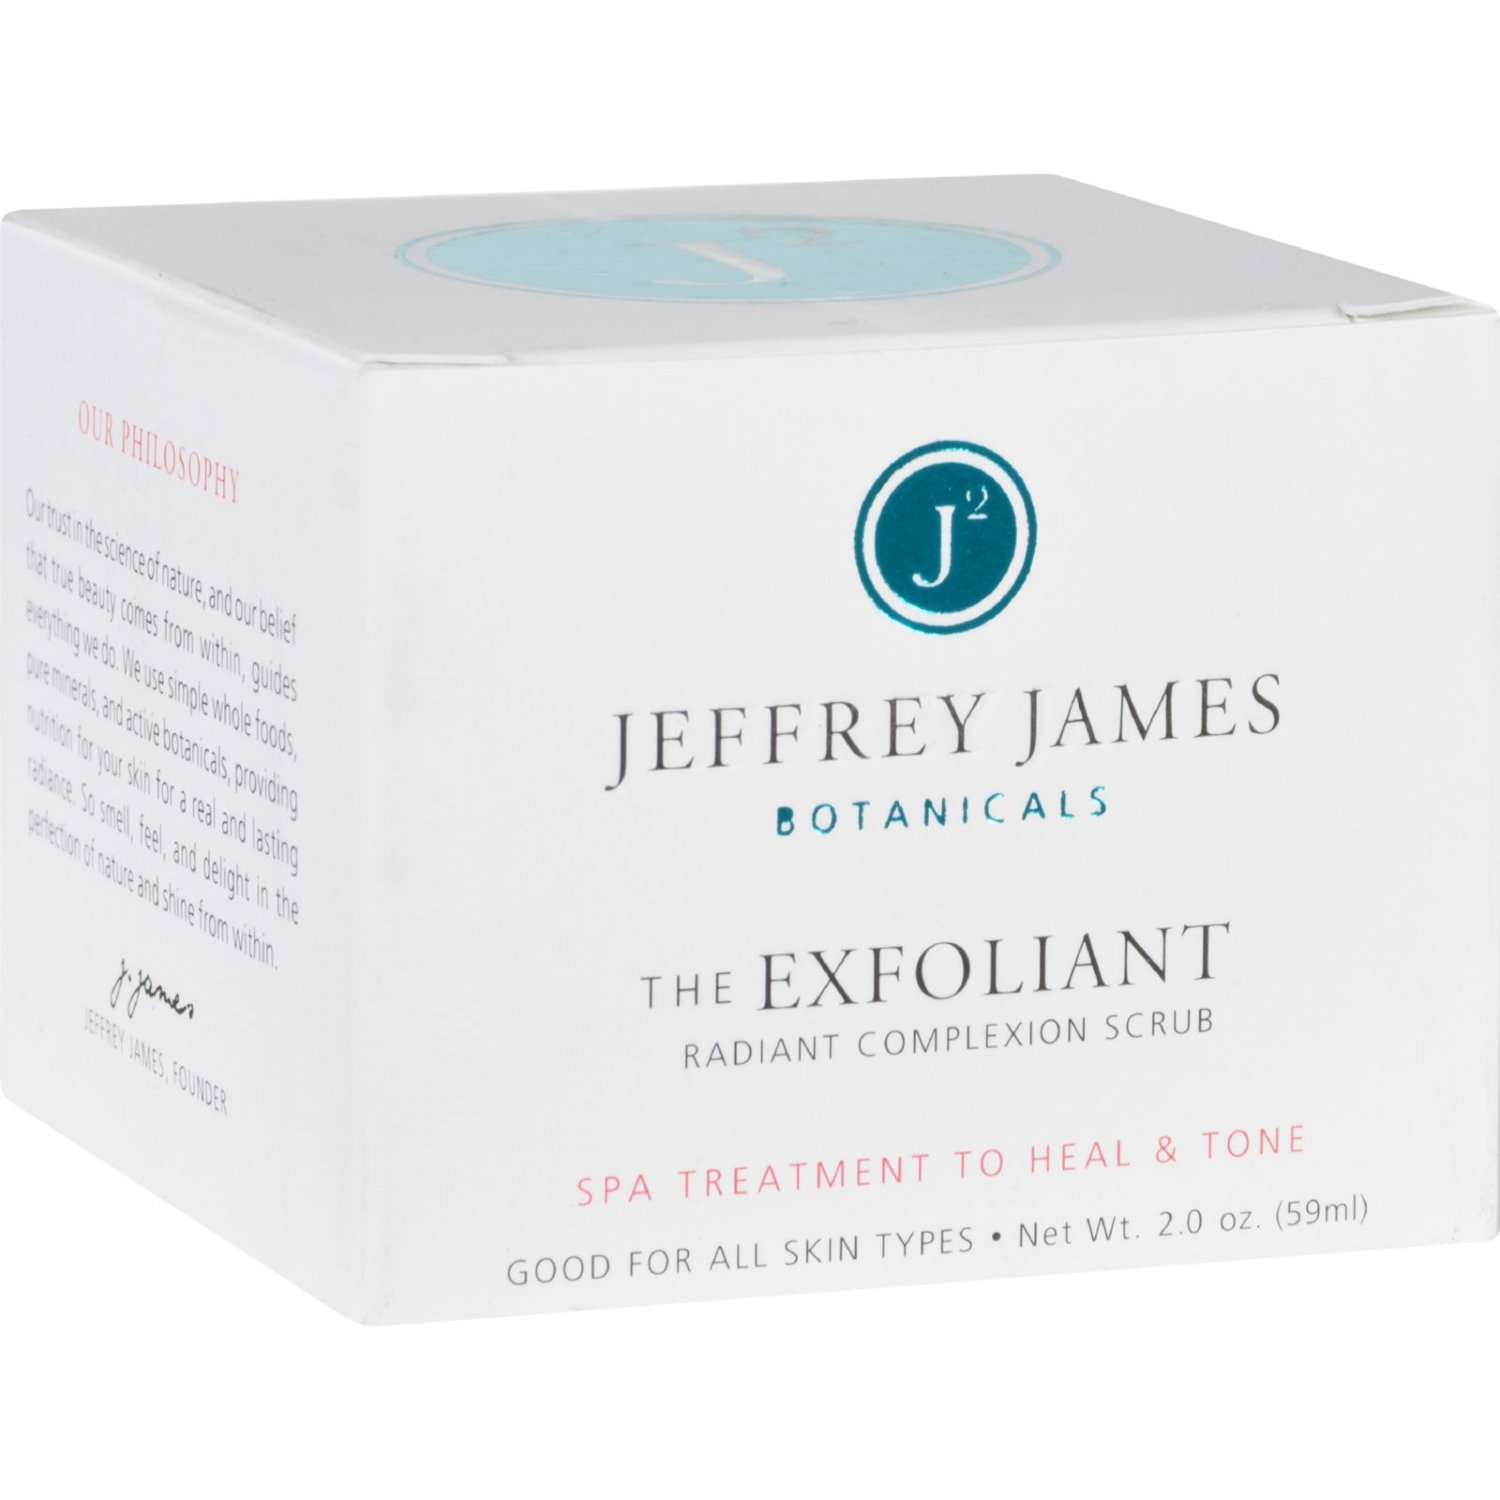 Jeffrey James Botanicals Complexion Scrub - The Exfoliant - Radiant - 2 oz